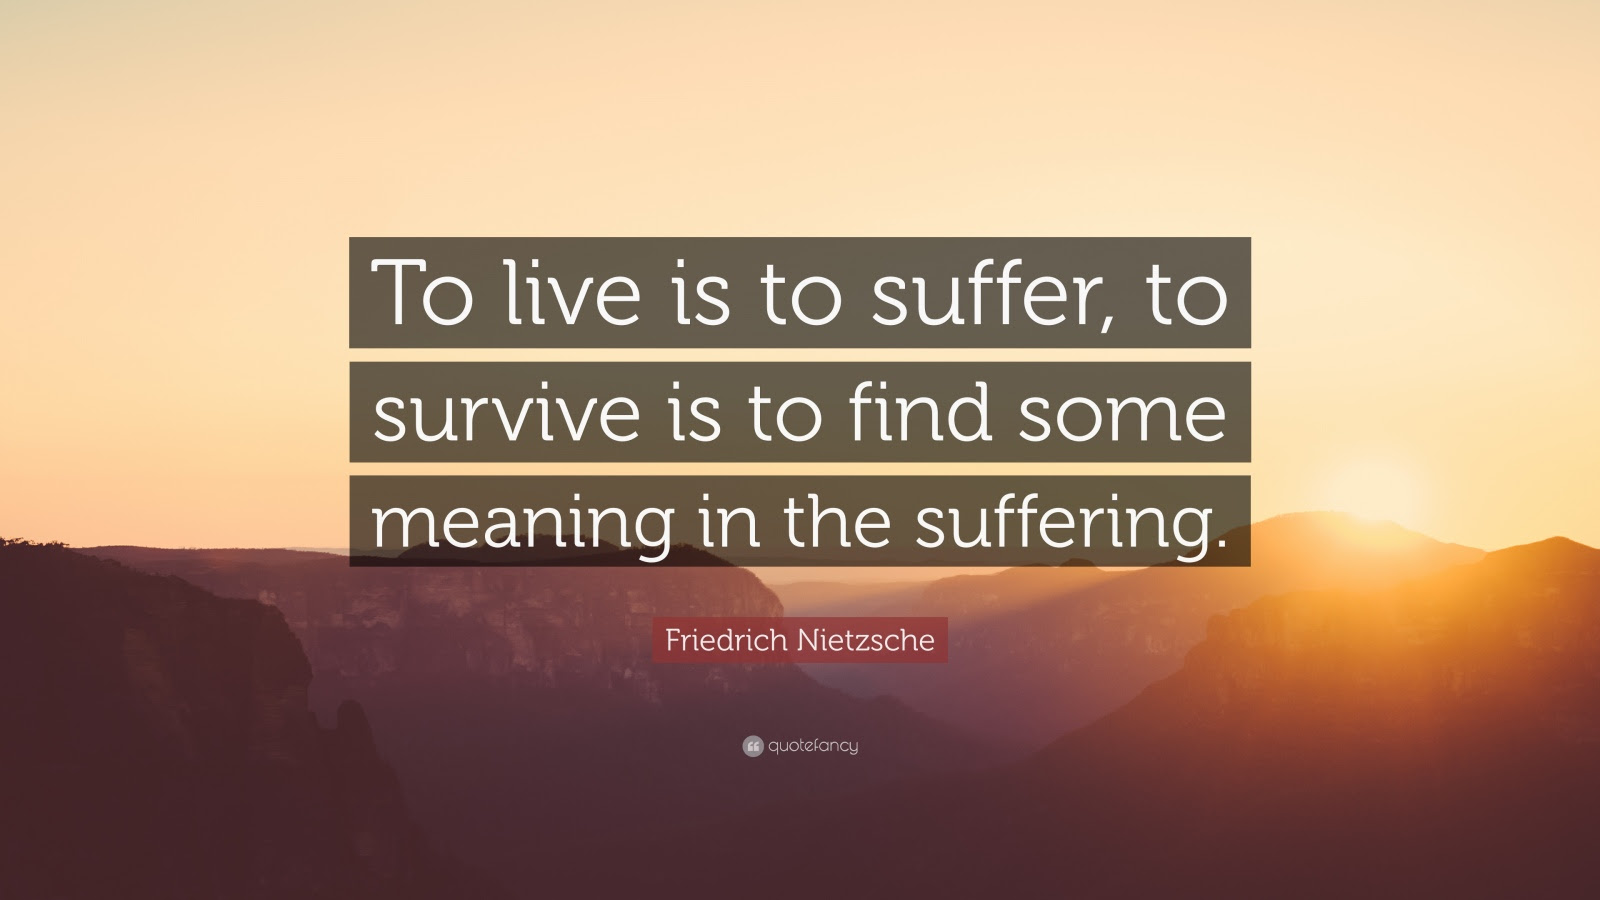 Quotes About Finding Meaning In Suffering 13 Quotes